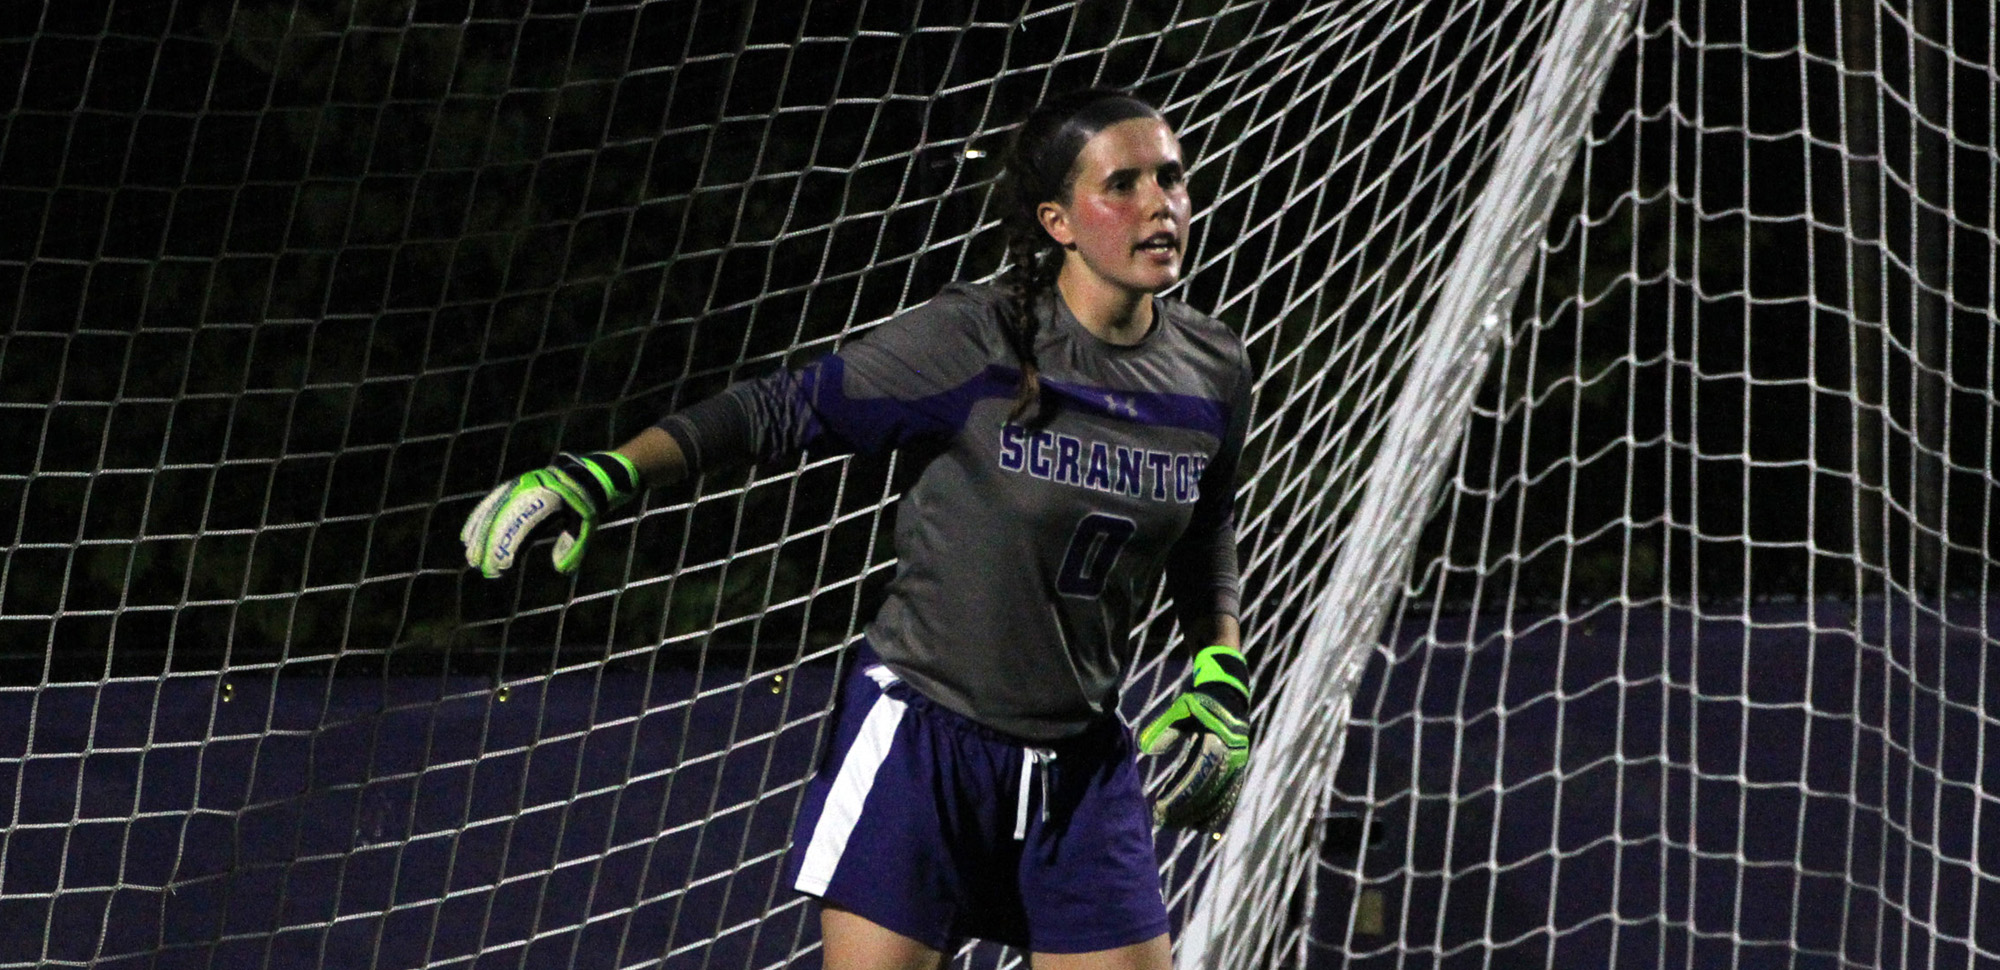 Senior keeper Colleen Berry recorded the 19th shutout of her career on Saturday.